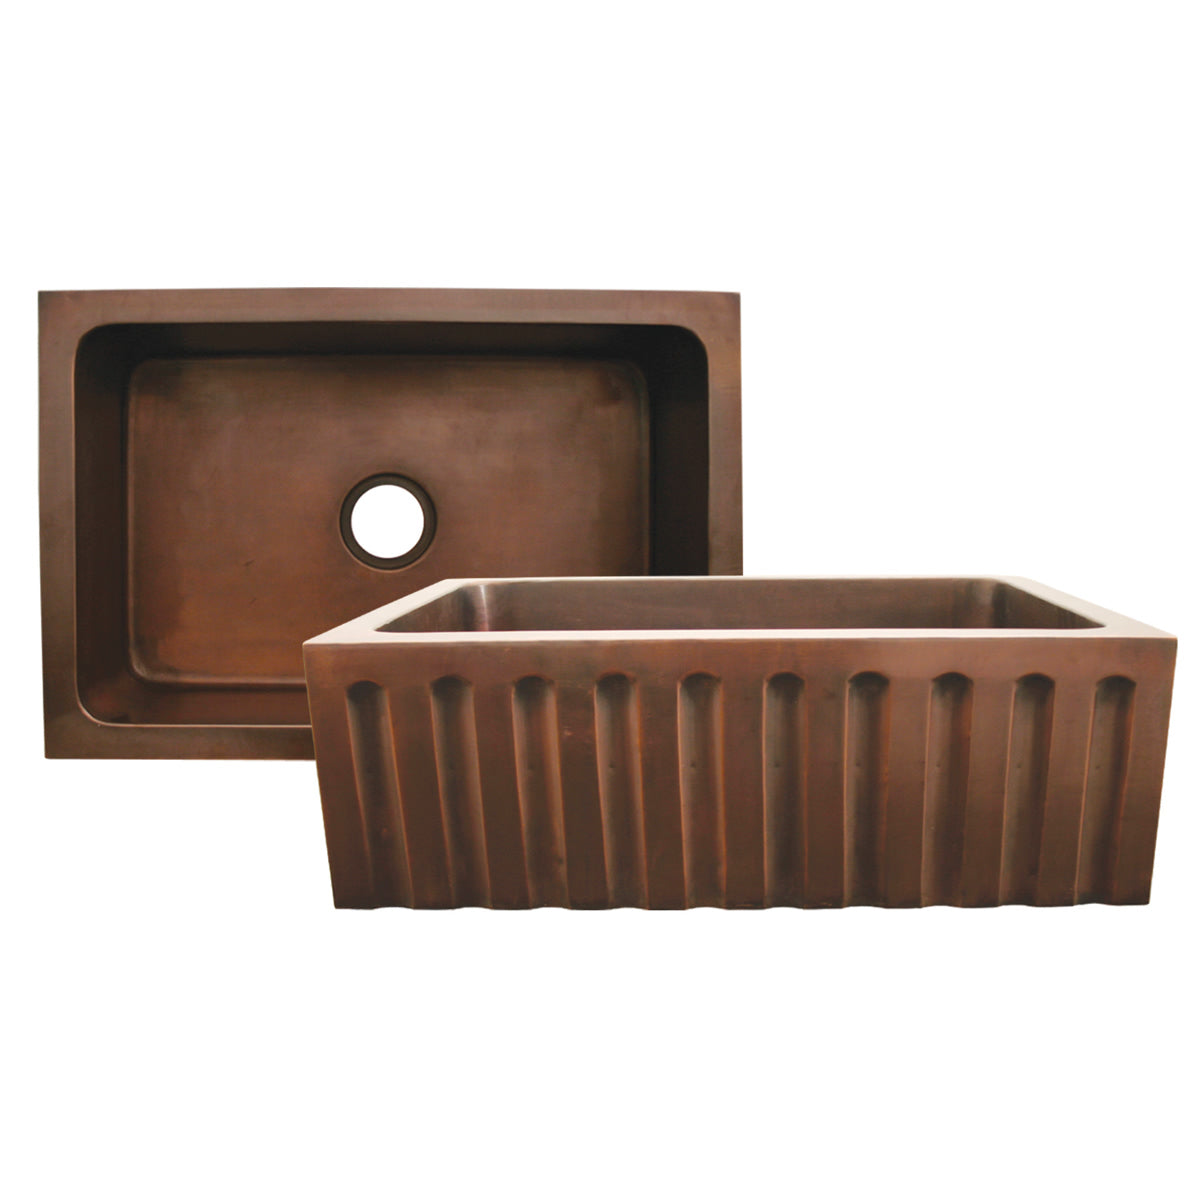 Whitehaus Copperhaus Rectangular Undermount Sink with a Fluted Design Front Apron